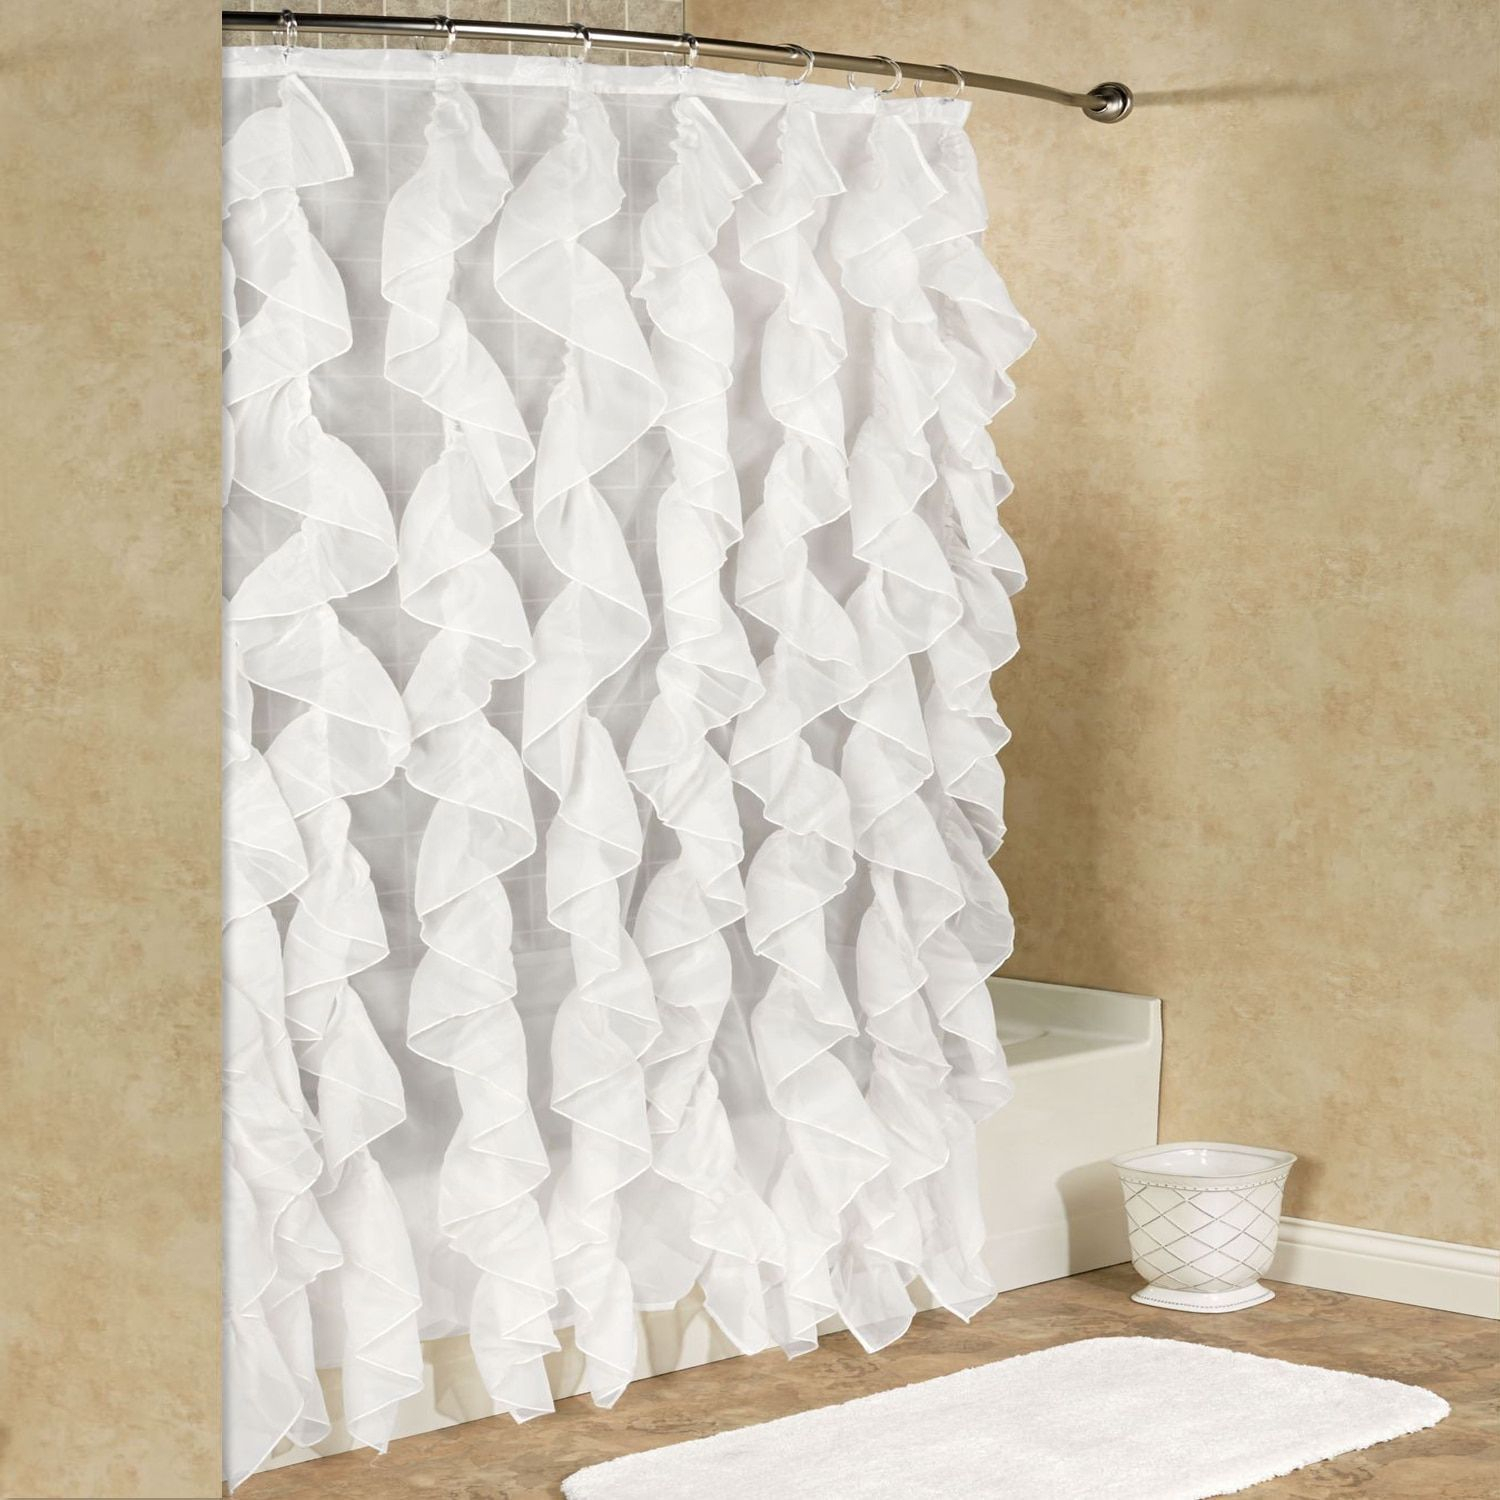 Chic Sheer Voile Vertical Waterfall Ruffled Shower Curtain With Regard To Chic Sheer Voile Vertical Ruffled Window Curtain Tiers (View 8 of 20)